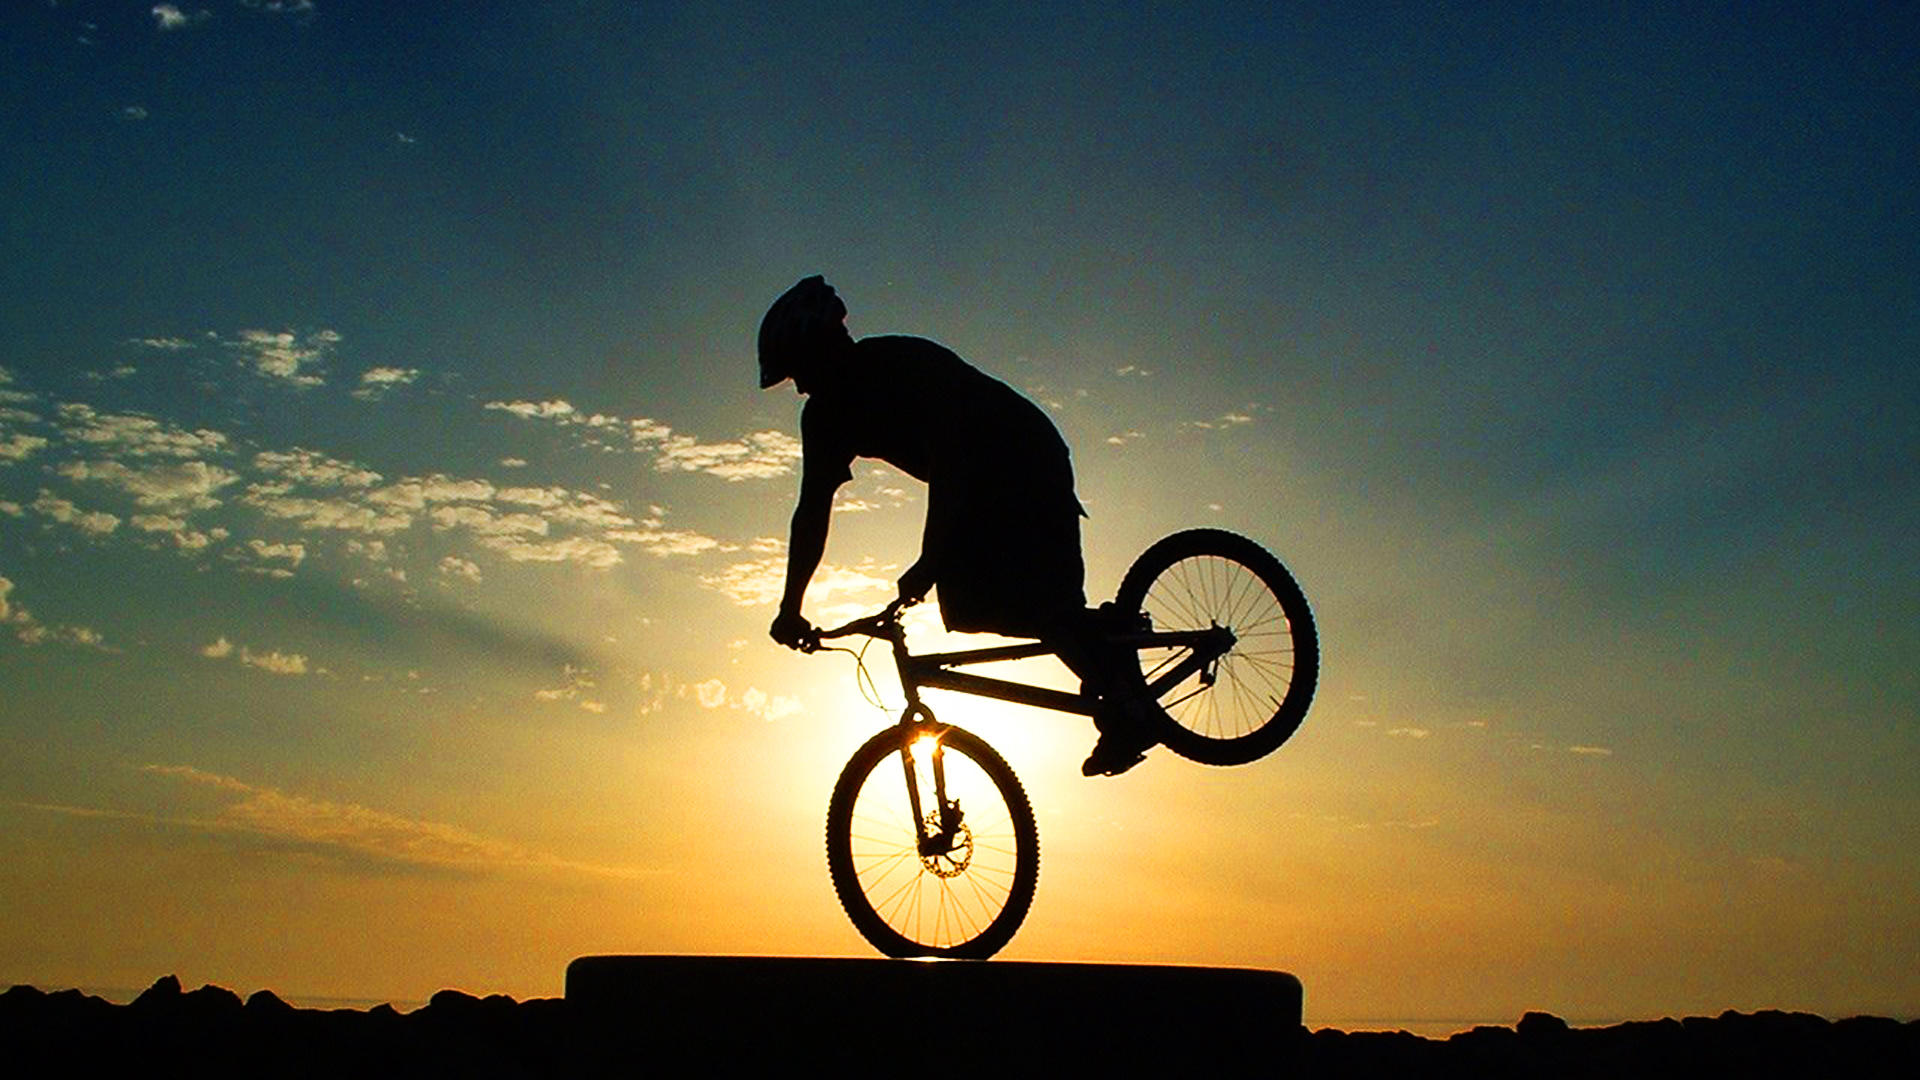 Danny MacAskill HD Wallpaper